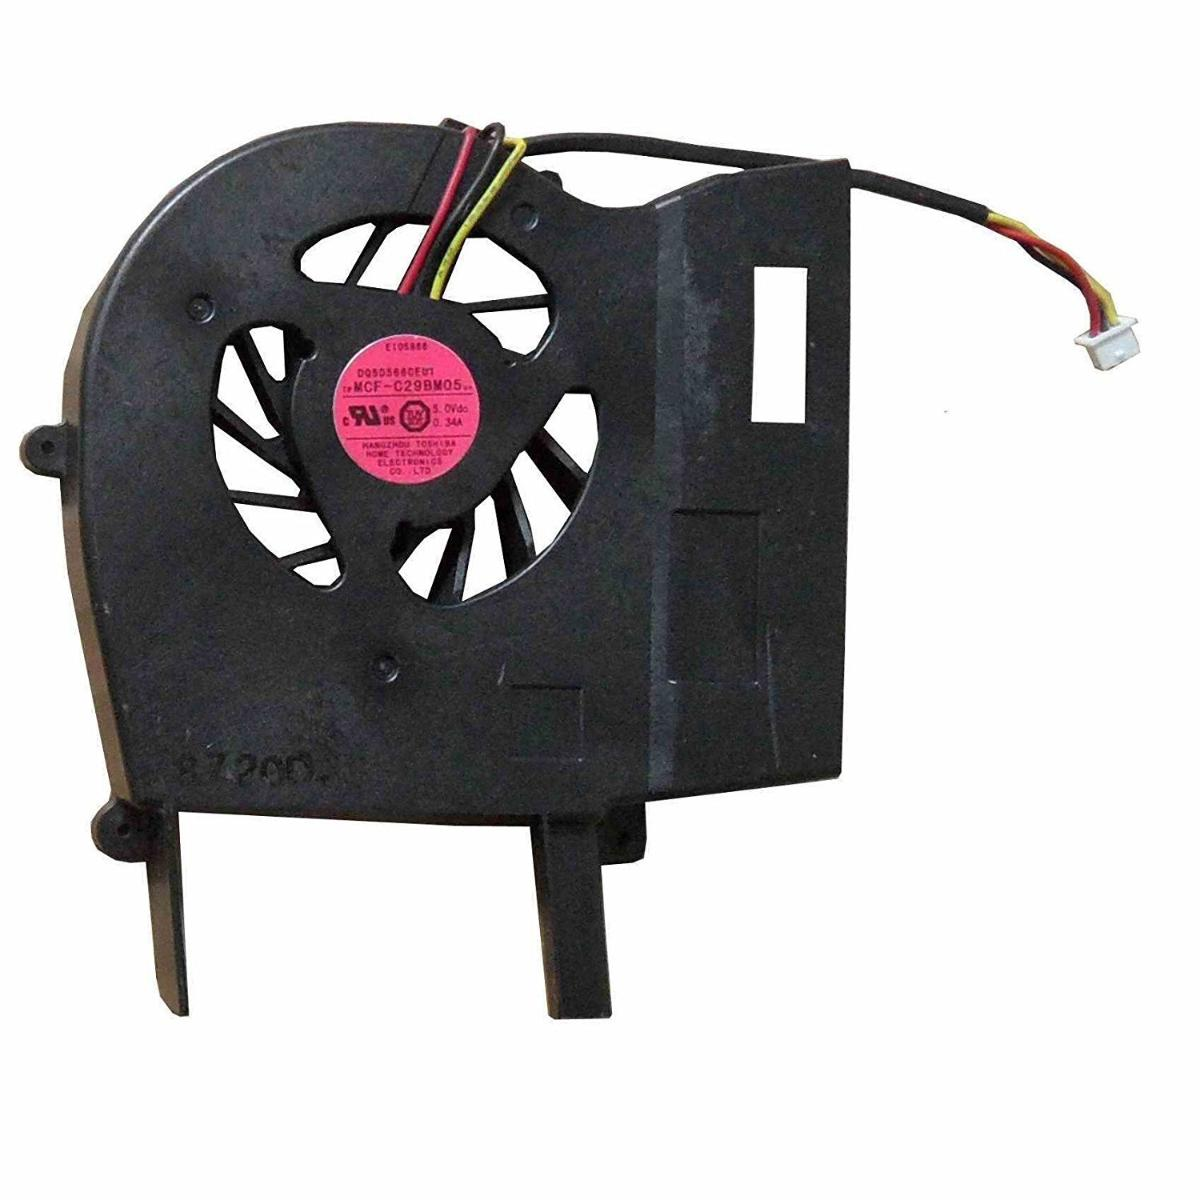 Ανεμιστηράκι Laptop - CPU Cooling Fan SONY Vaio PCG-3E2L PCG-3E3L VGN-CS110E FN14 VGN-CS110E (Κωδ. 80137)